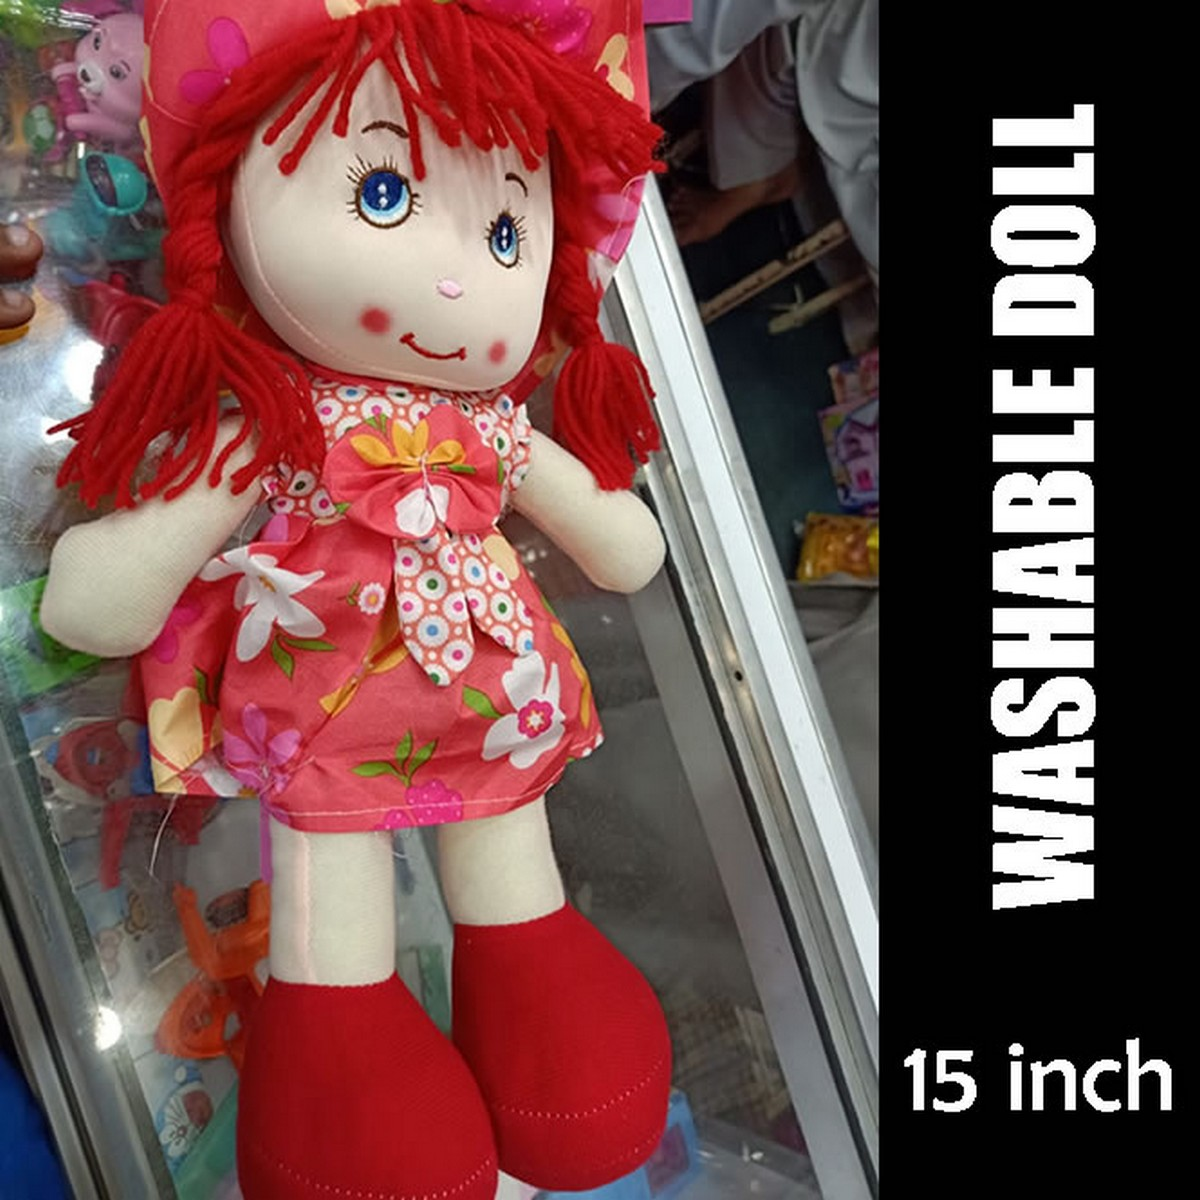 Nice Doll for Girls - Elegant Stuffed Washable Doll for Girls (15 Inches Height)